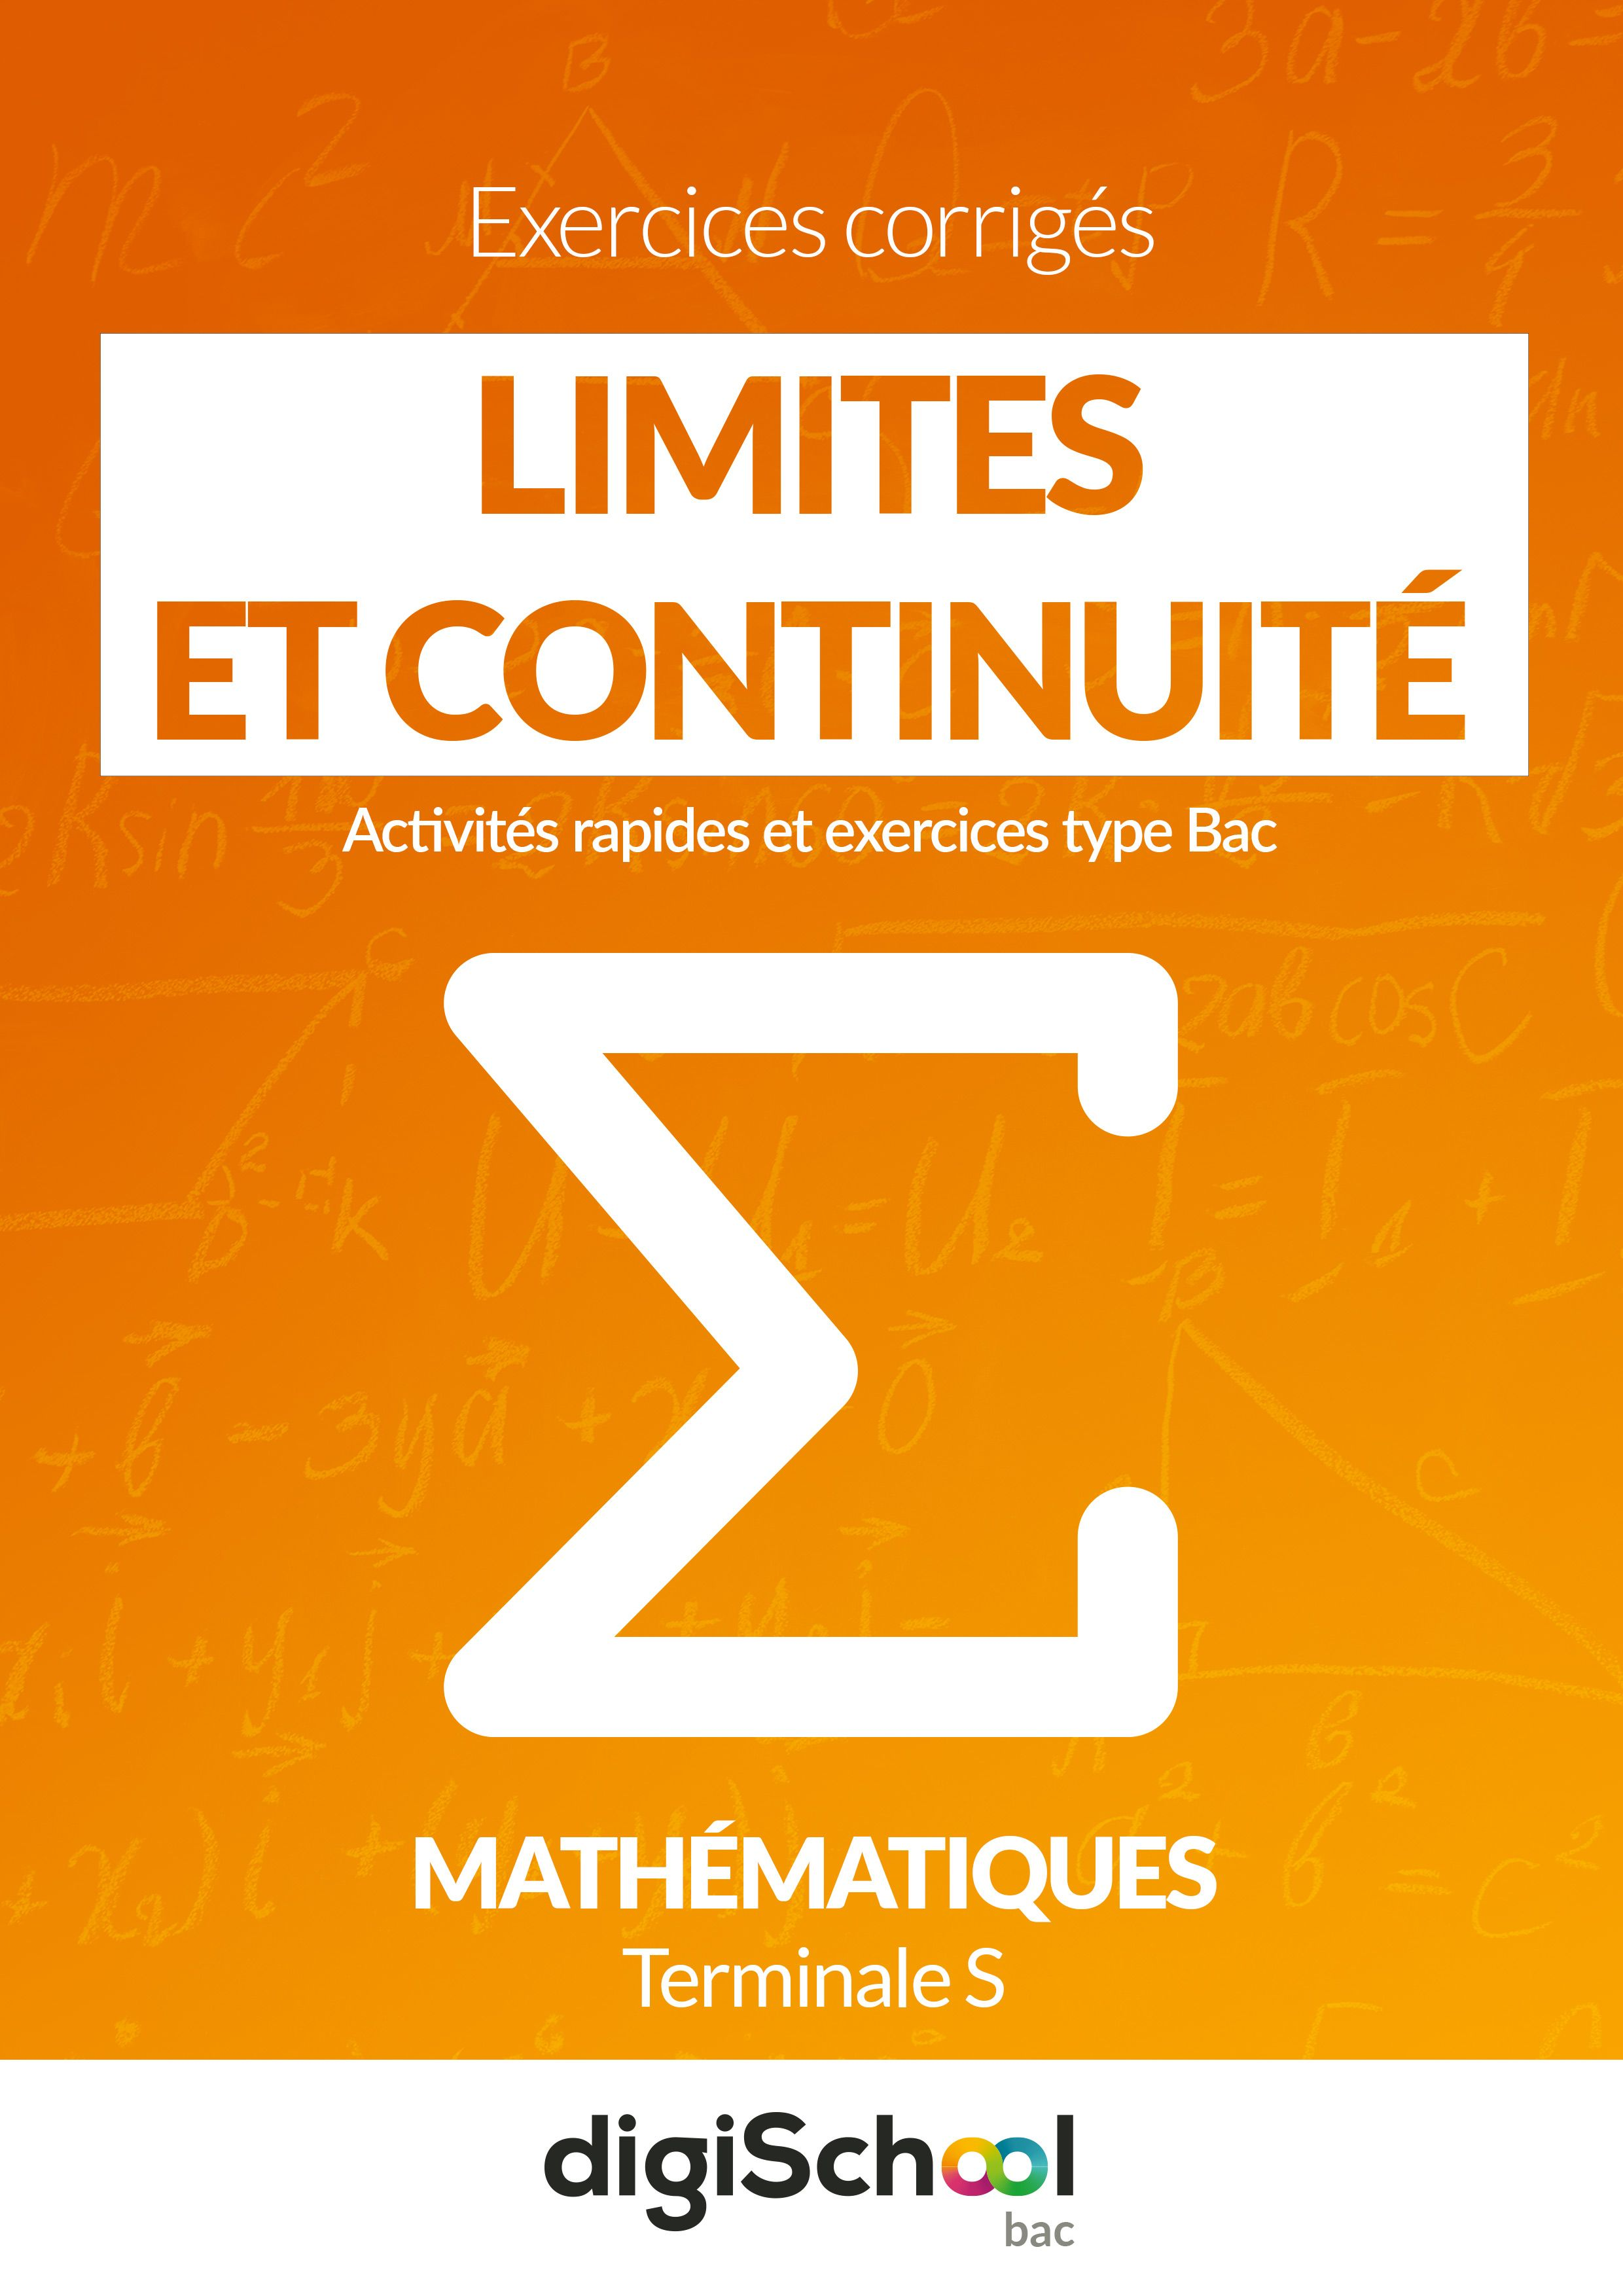 Exercices Corriges Limites Et Continuite Mathematiques Terminale S Quiz Math Education